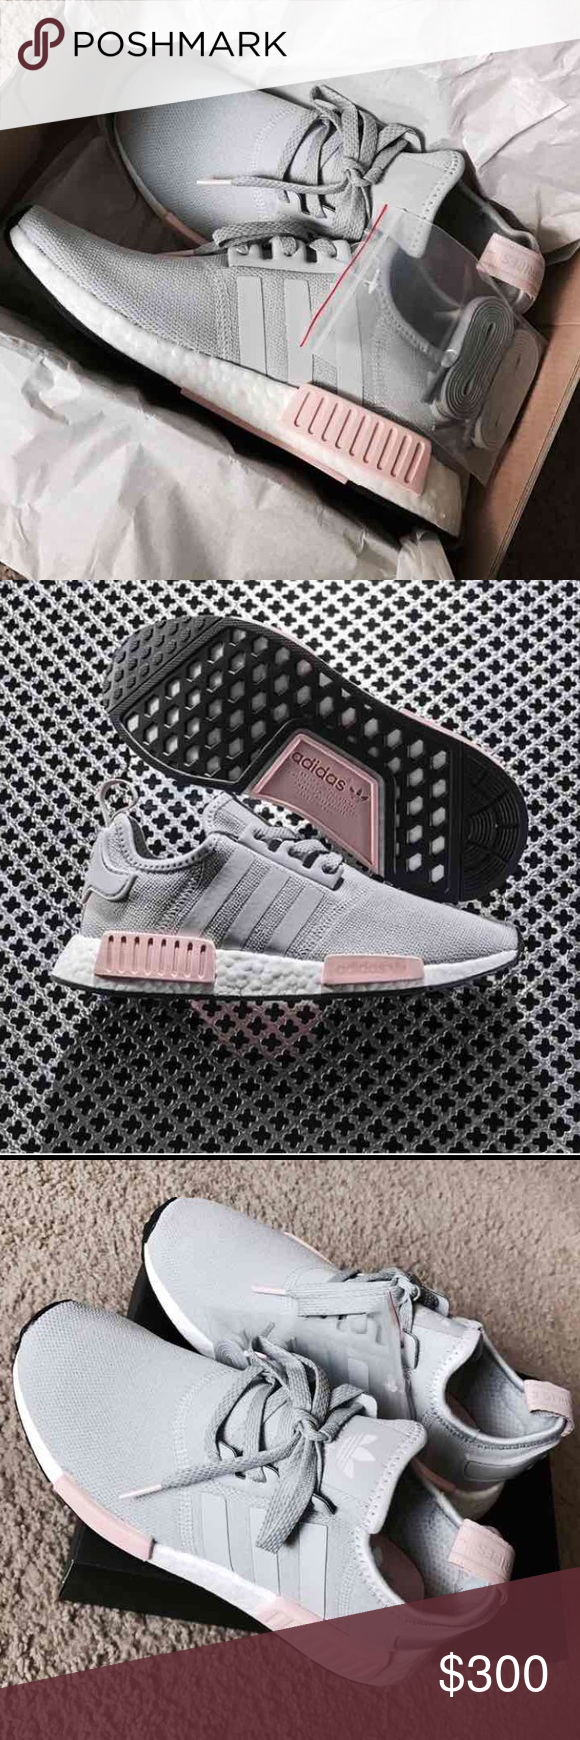 Adidas NMD R1 Real Boost Grey White